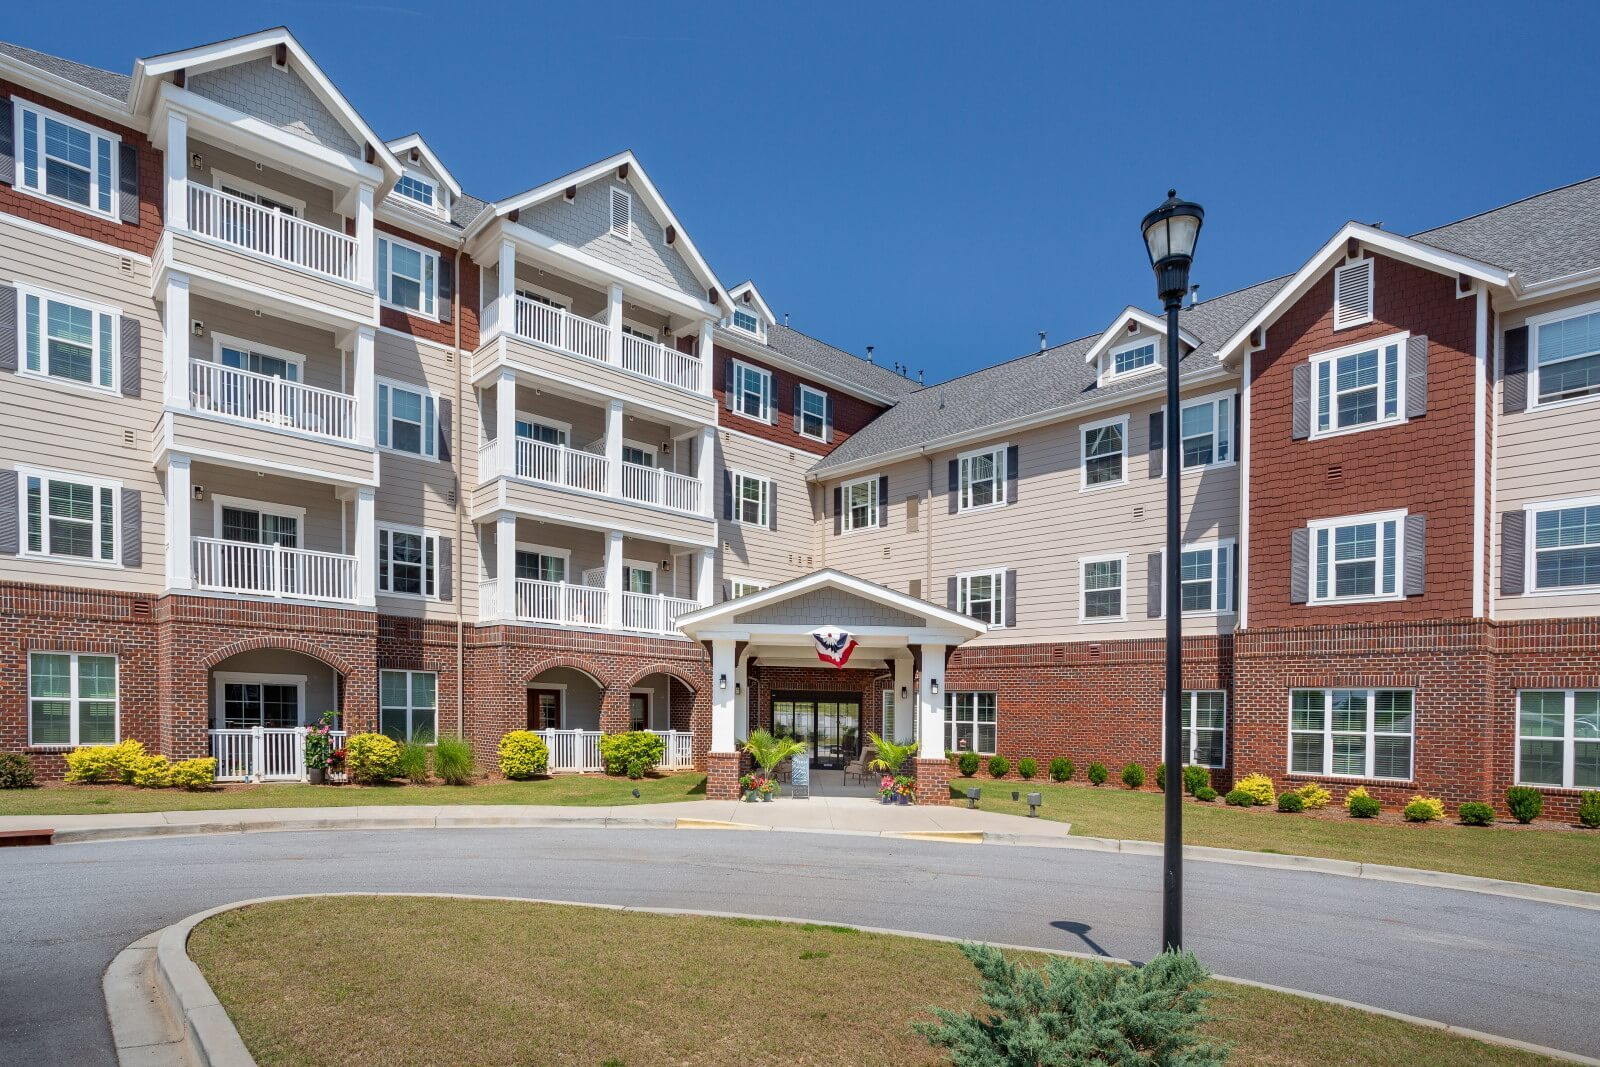 Harmony-at-Five-Forks-Exterior-5